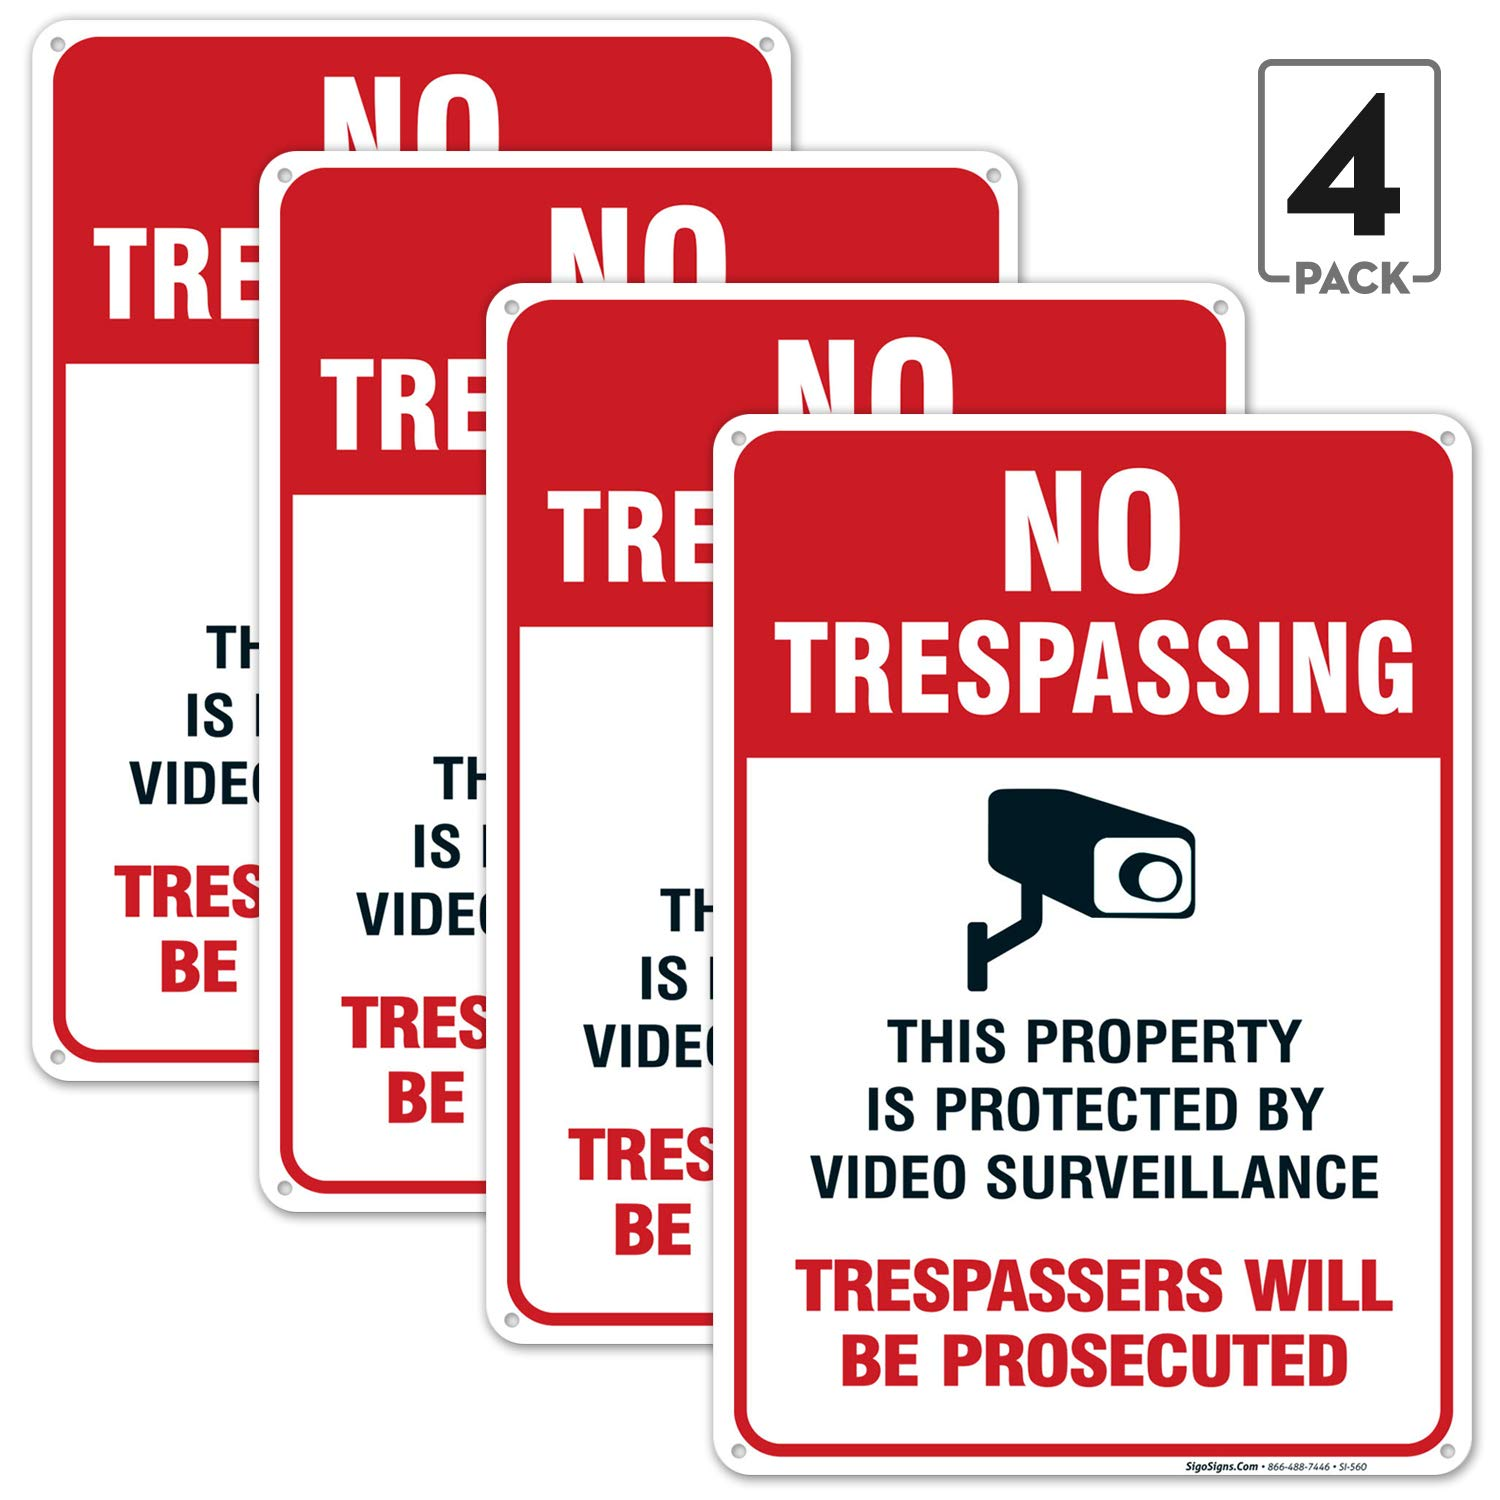 Indoor//Outdoor Use Weather//Fade Resistant No Trespassing Sign 10x14 Rust Free Aluminum Made in USA by SIGO SIGNS 4 Pack Video Surveillance Sign Easy Mounting